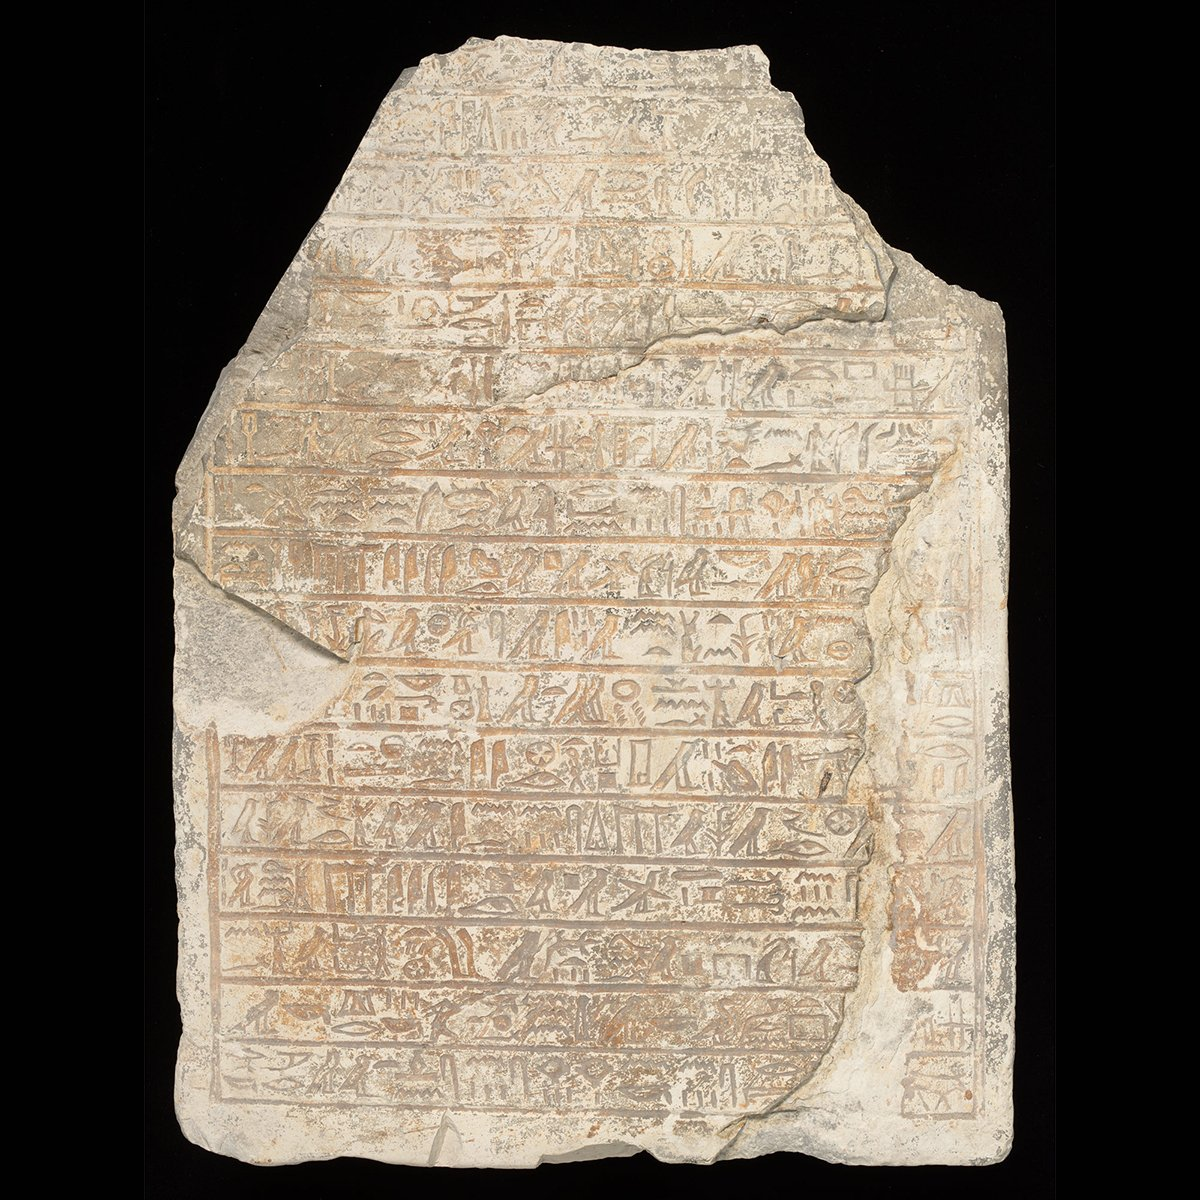 We'd like to show you the oldest item in our collection.   Currently on display in #MakingYourMark, this 3,600-year-old stela is inscribed with Egyptian #hieroglyphs. Although yet to be fully deciphered, we know it contains a hymn to the god of the netherworld, Osiris.<br>http://pic.twitter.com/lpMoEi8Yvg